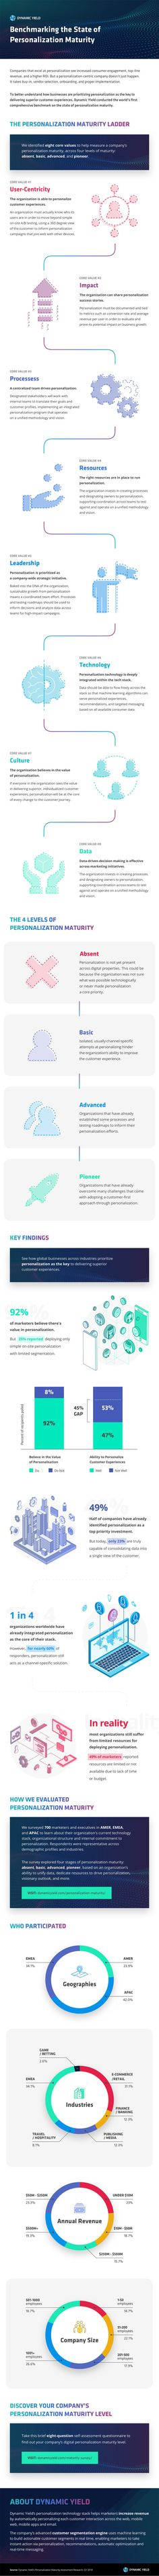 Personalization can be as simple as an email greeting or as complex as a fully customized, cross-channel shopping experience. See where your organization ranks and learn how to improve your...